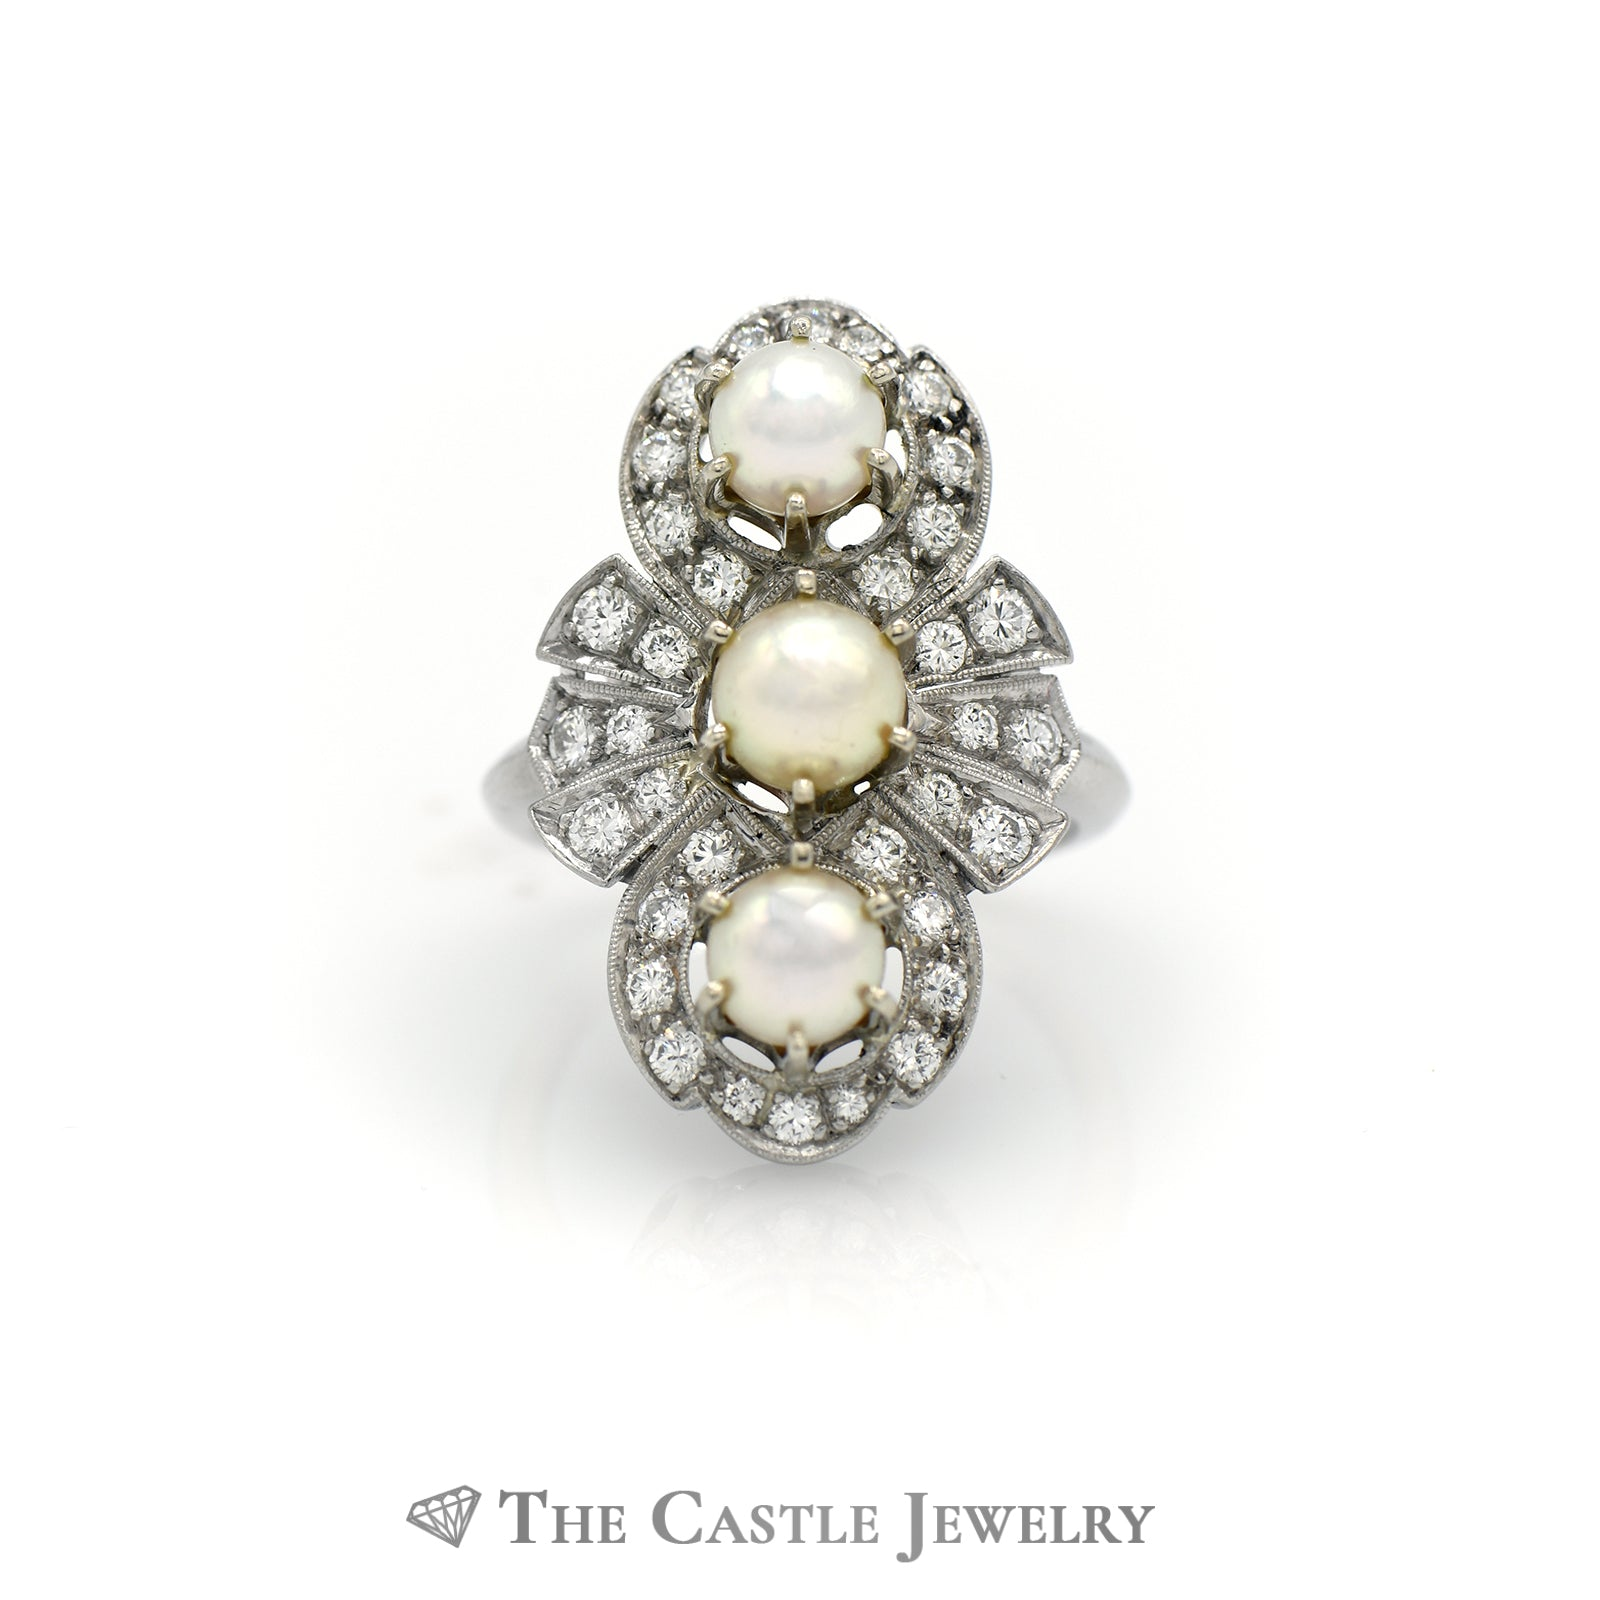 Stunning Triple Pearl Ring with 1cttw Diamonds in Antique Design Mounting